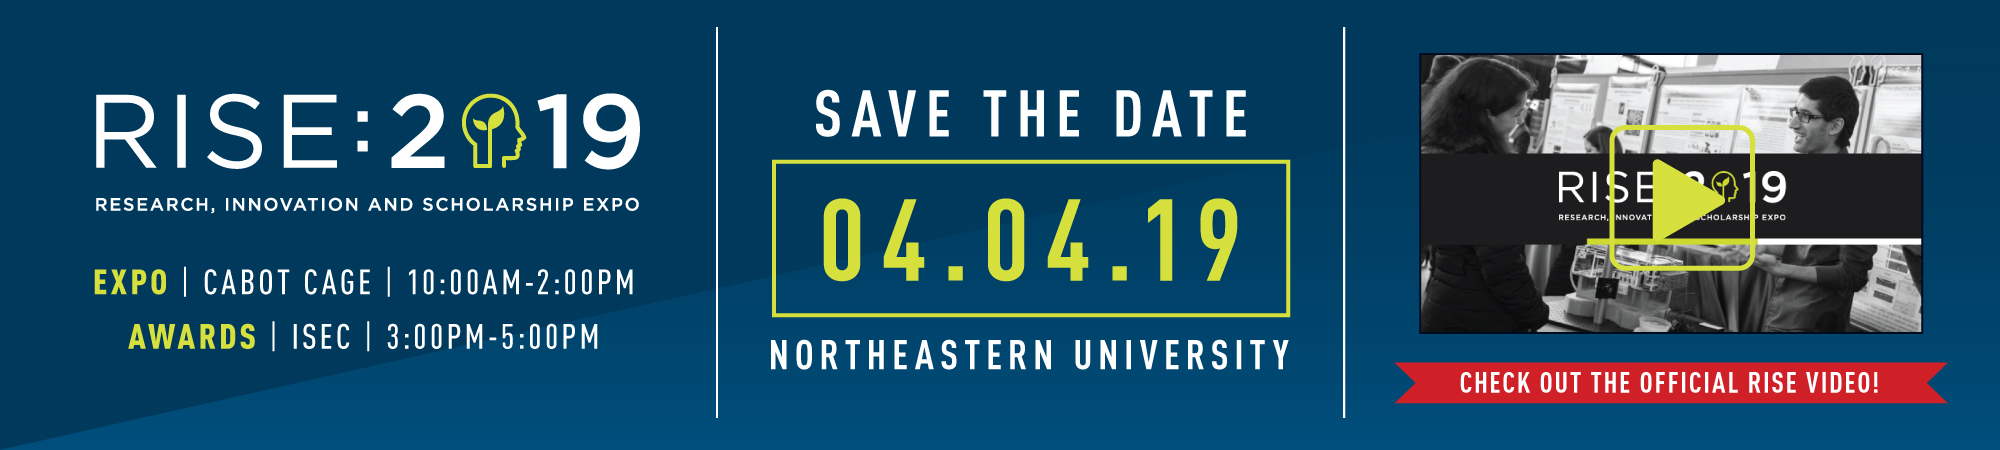 RISE 2019 Save The Date